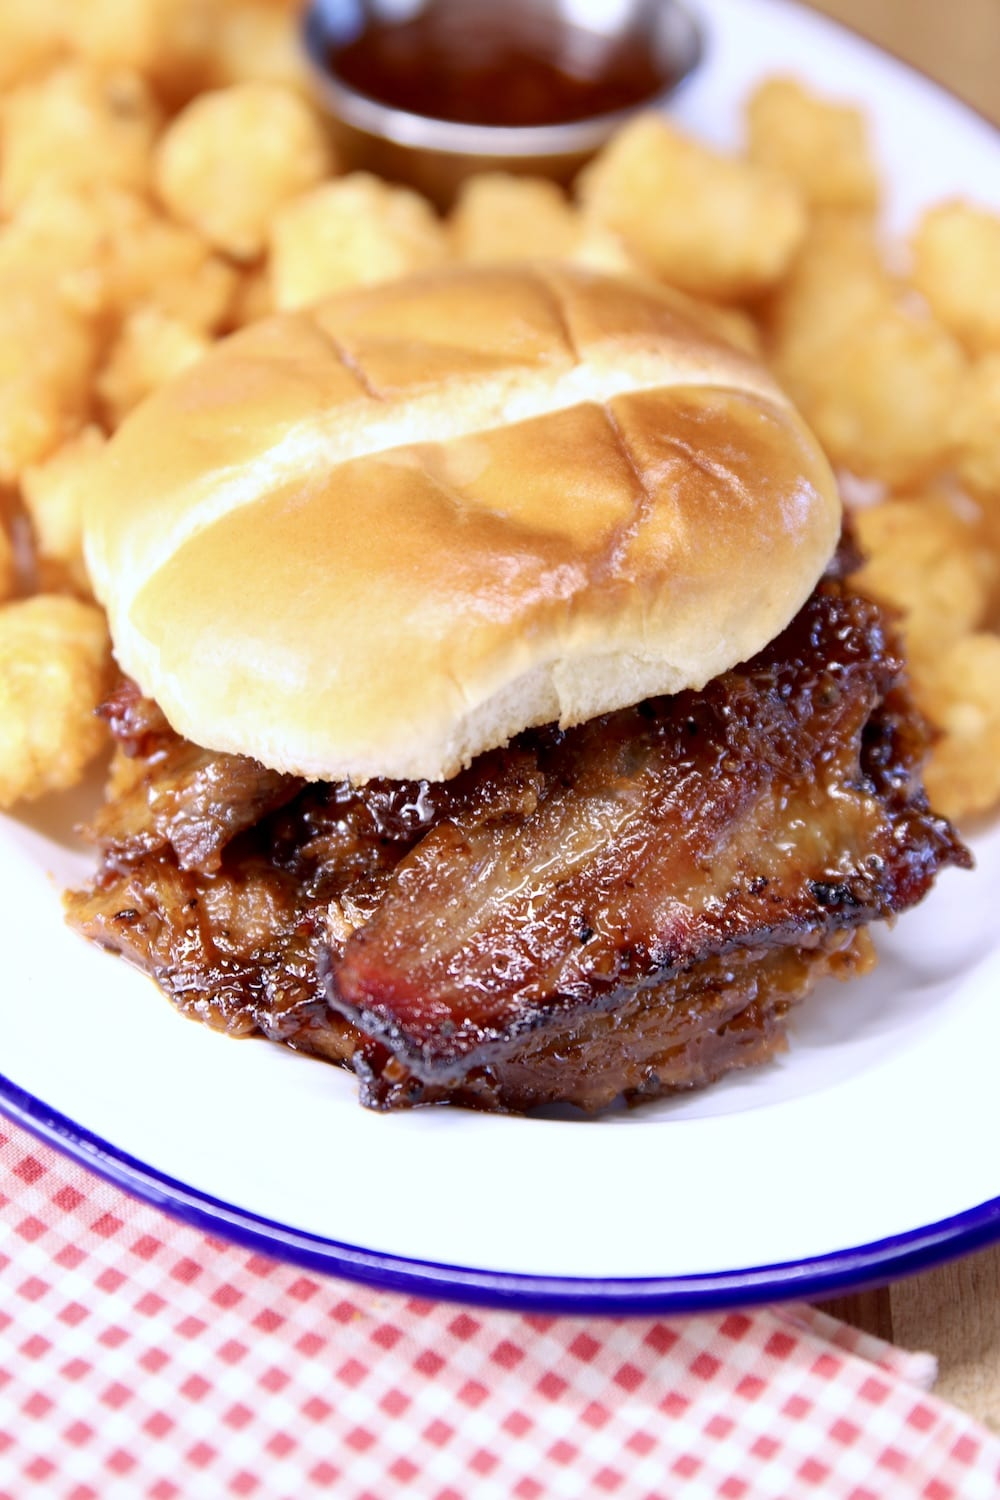 BBQ Brisket Sandwich on a plate with tater tots